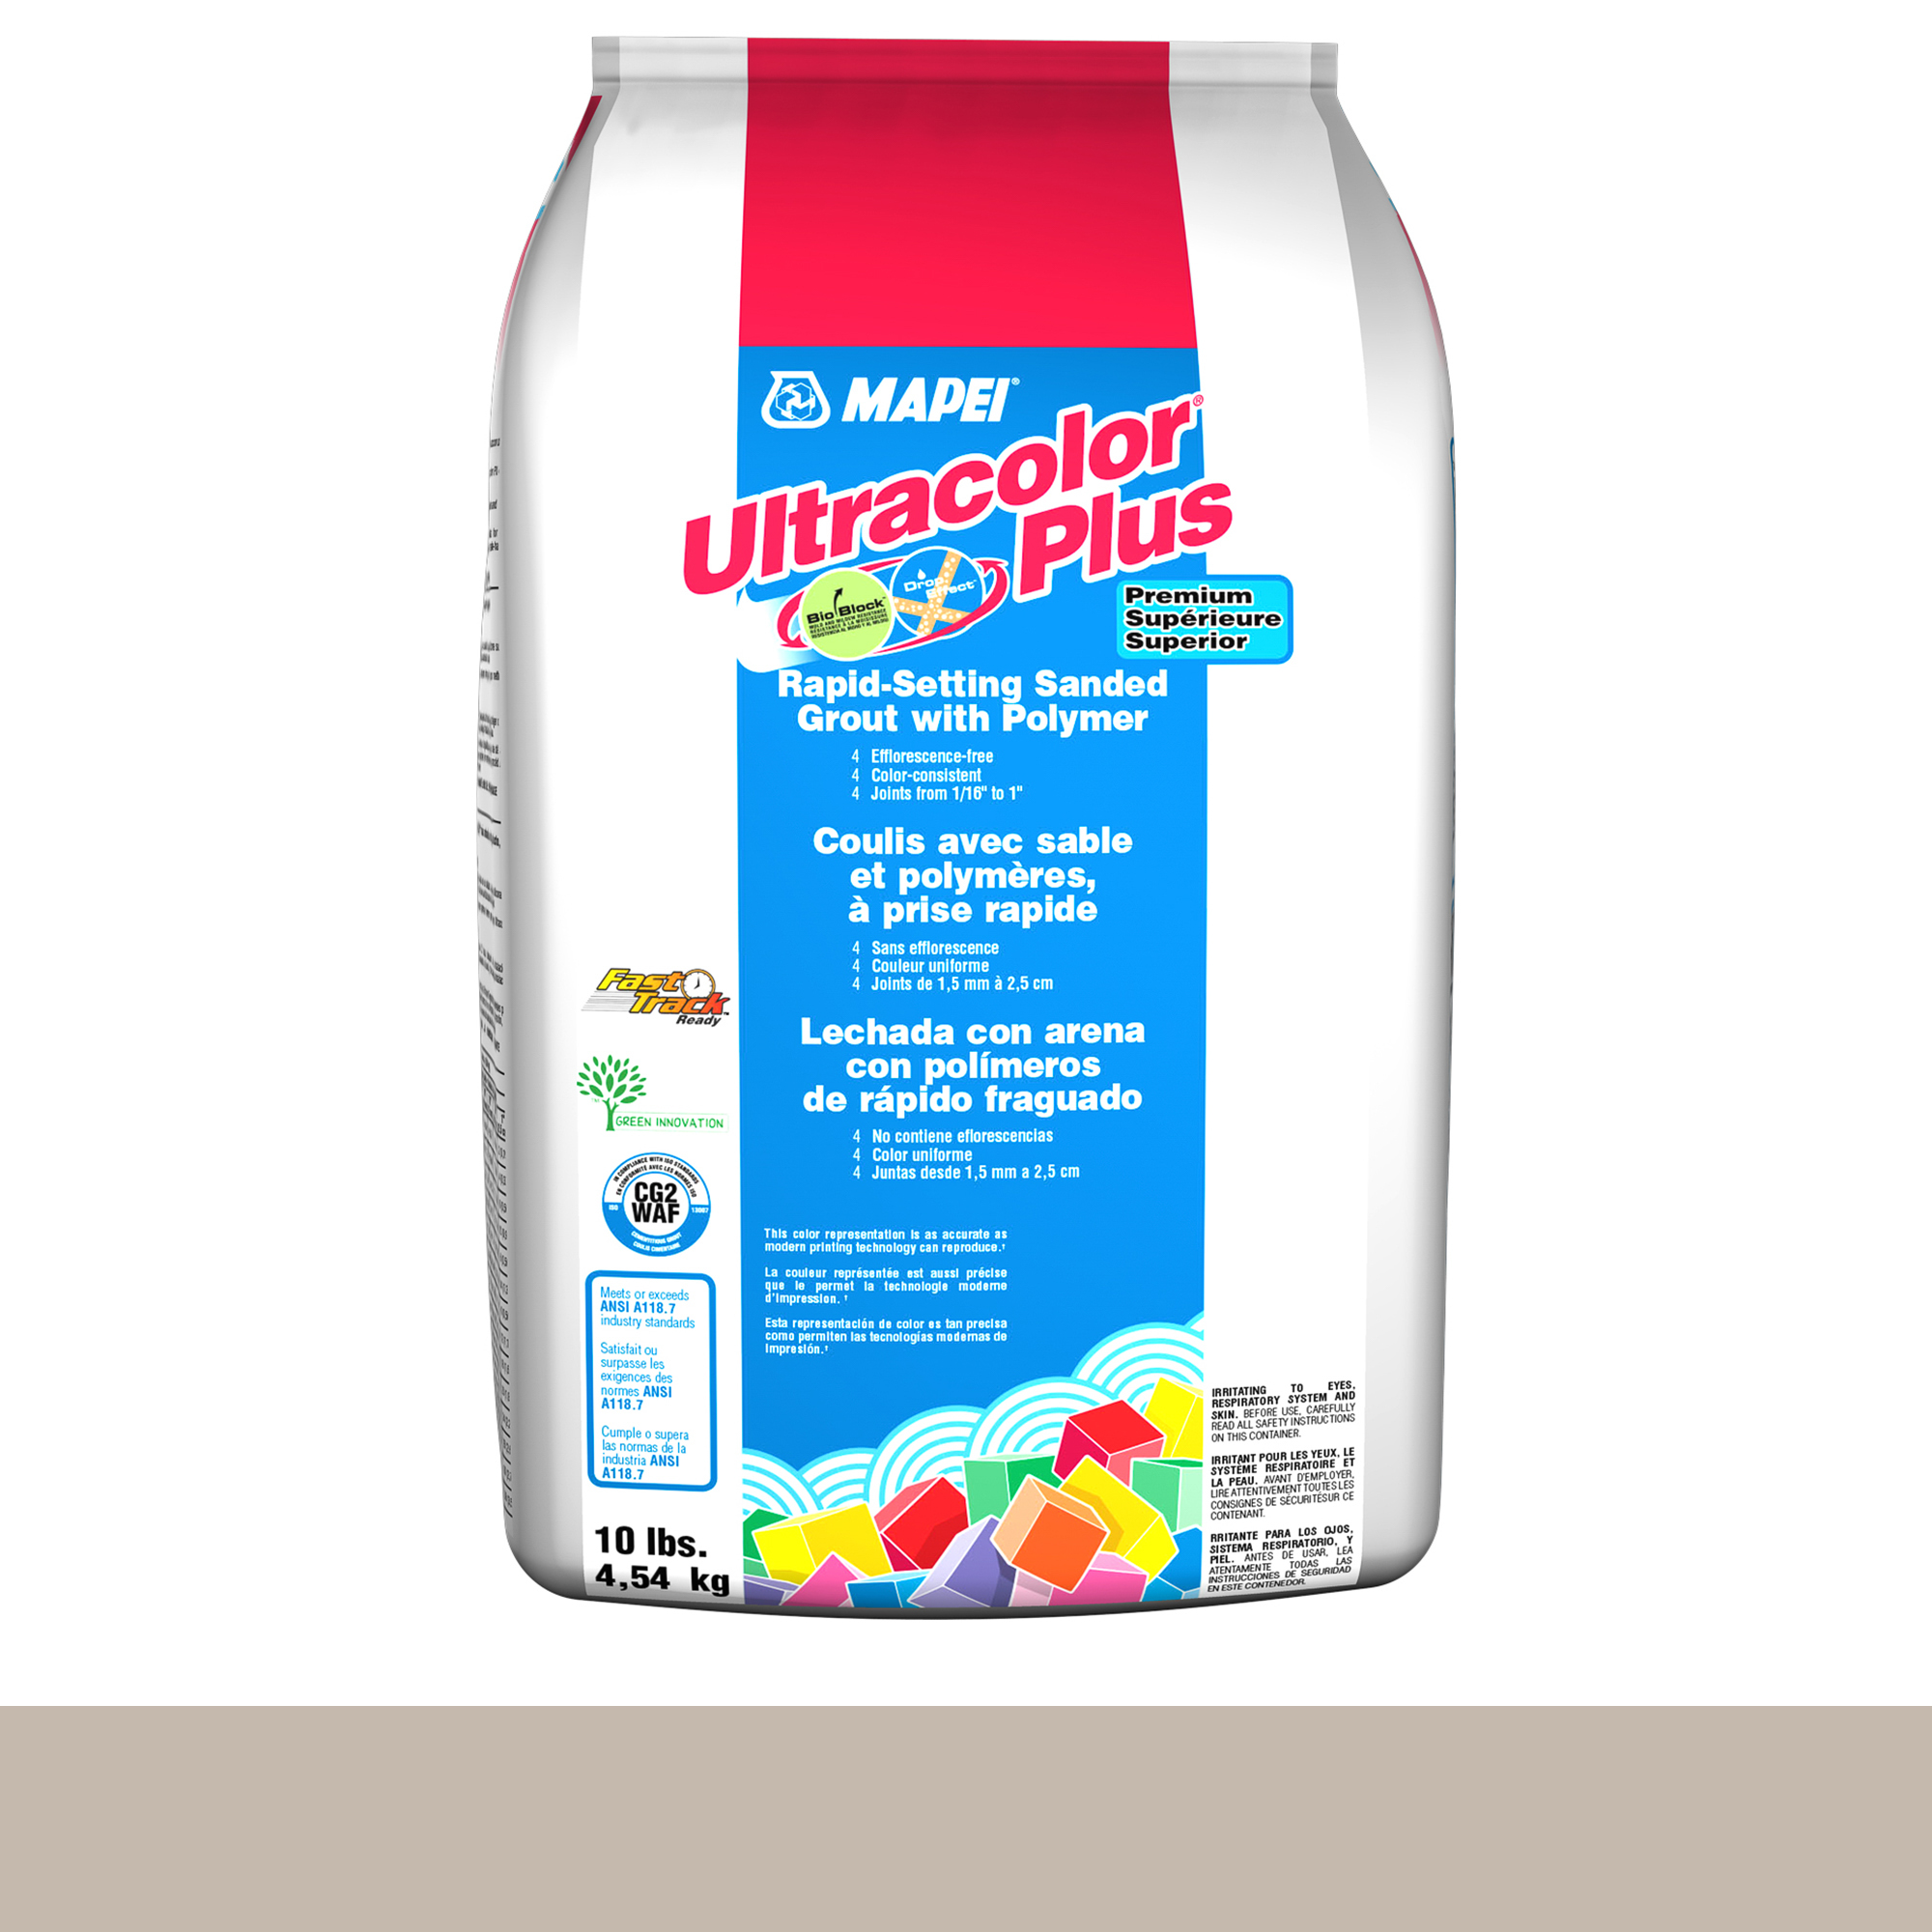 Mapei Ultracolor Plus Fa 39-Ivory 10-Lb Bag Grout Sanded product photo